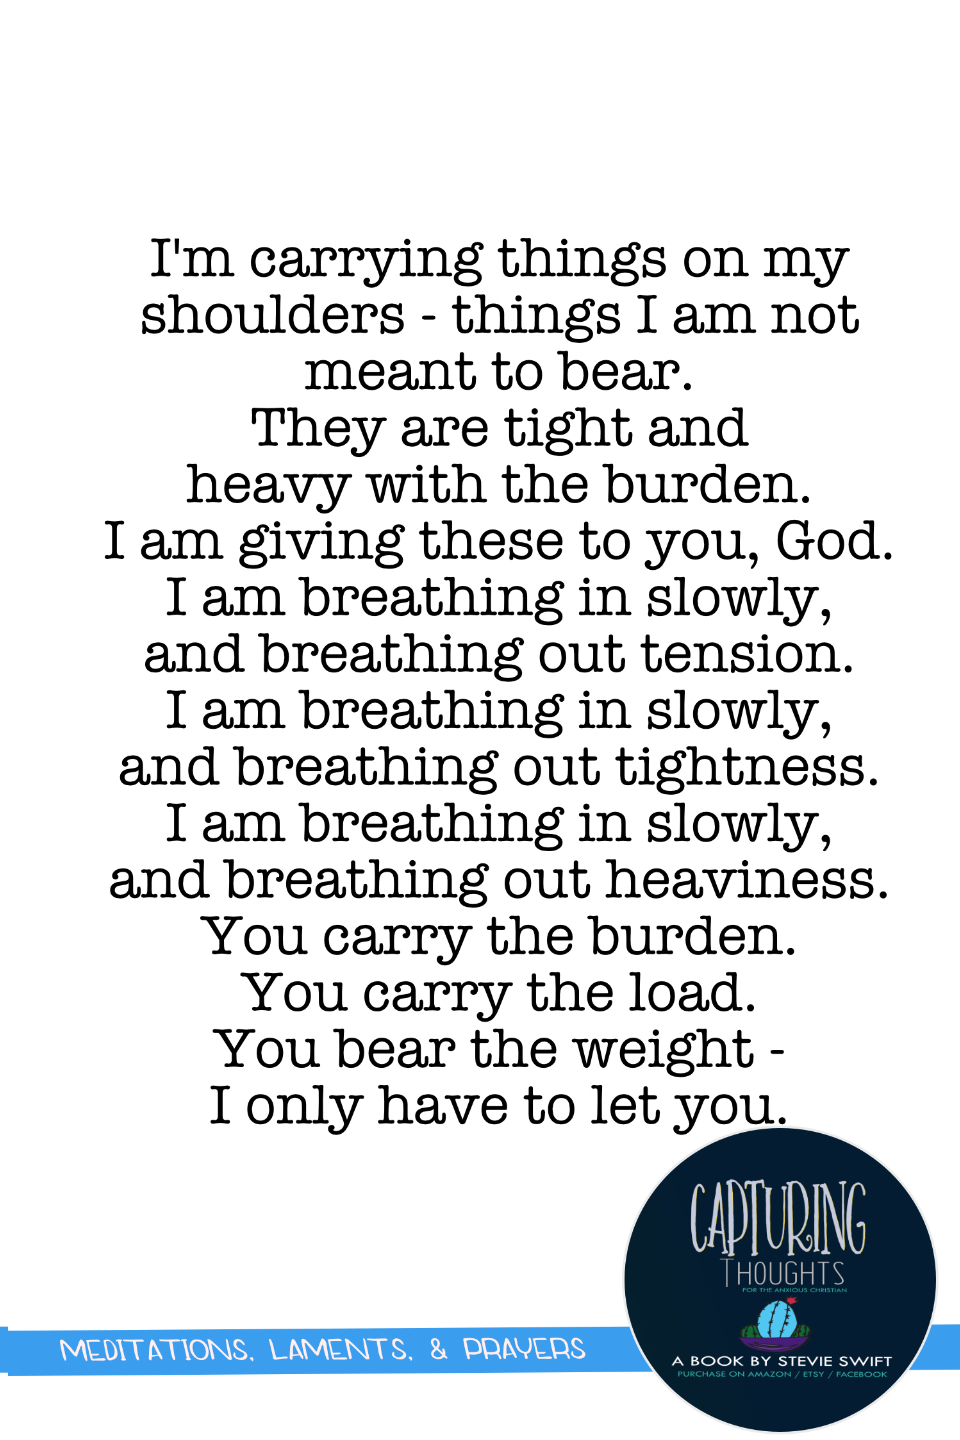 i'm carrying things on my shoulders - things i am no meant to bear. they are tight and heavy with the burden. i am giving these to you, god. i am breathing in slowly, and breathing out tension